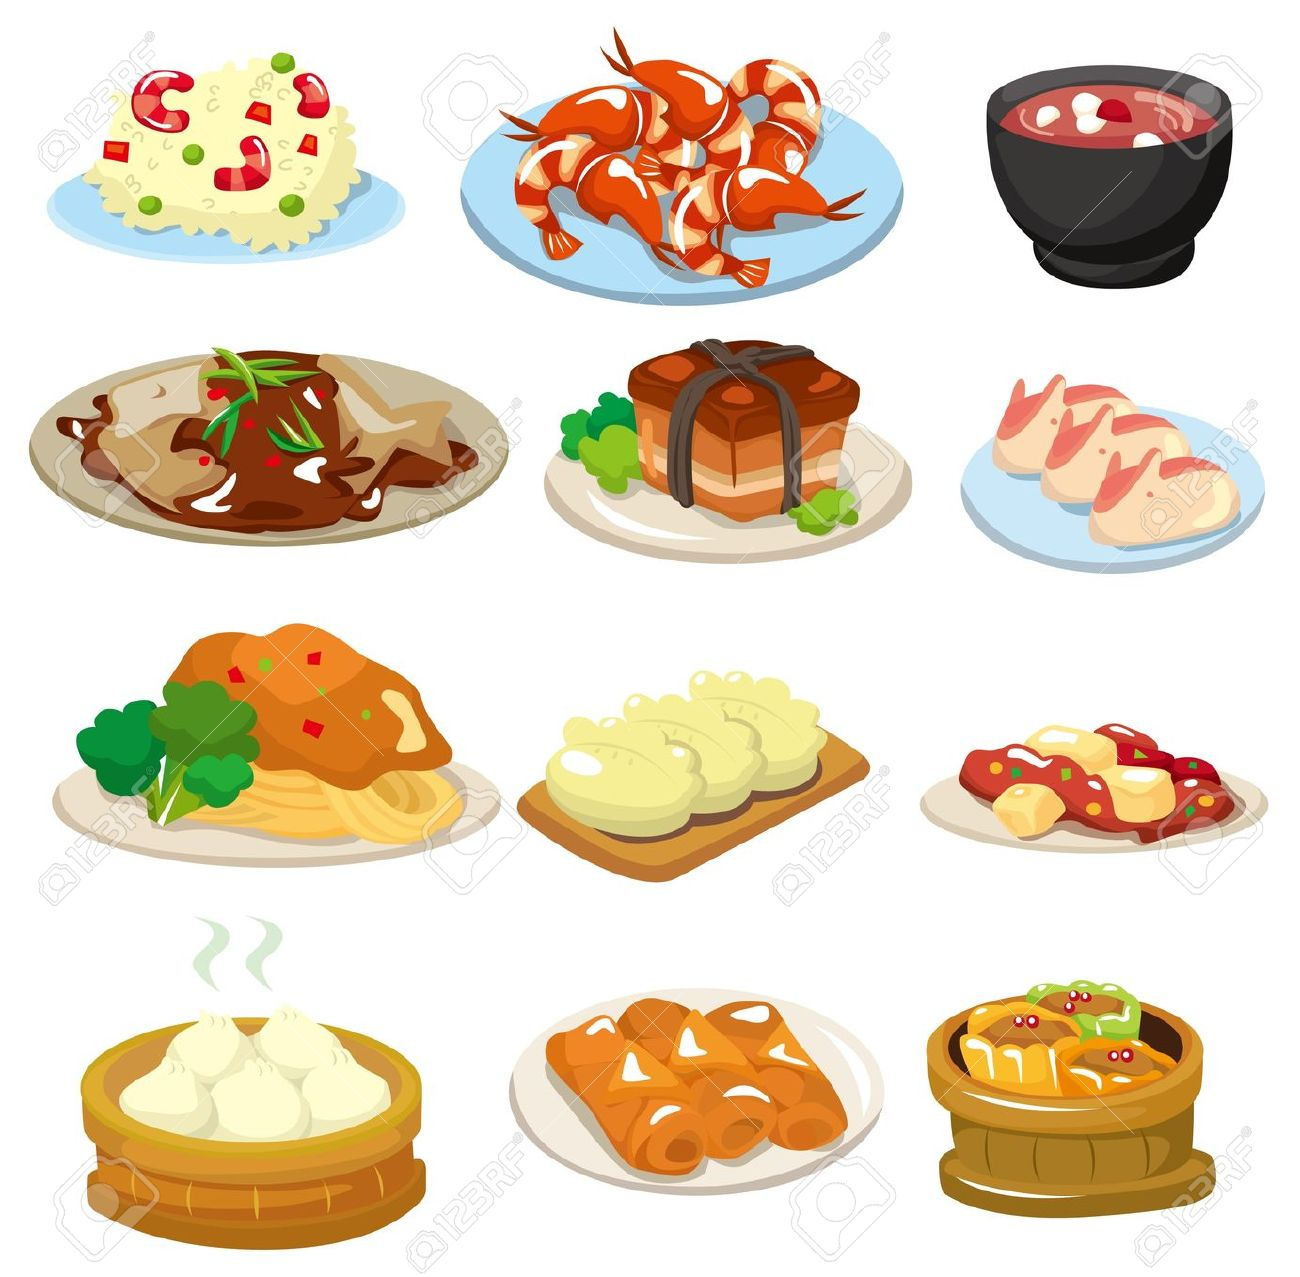 Asian food clipart - Clipground